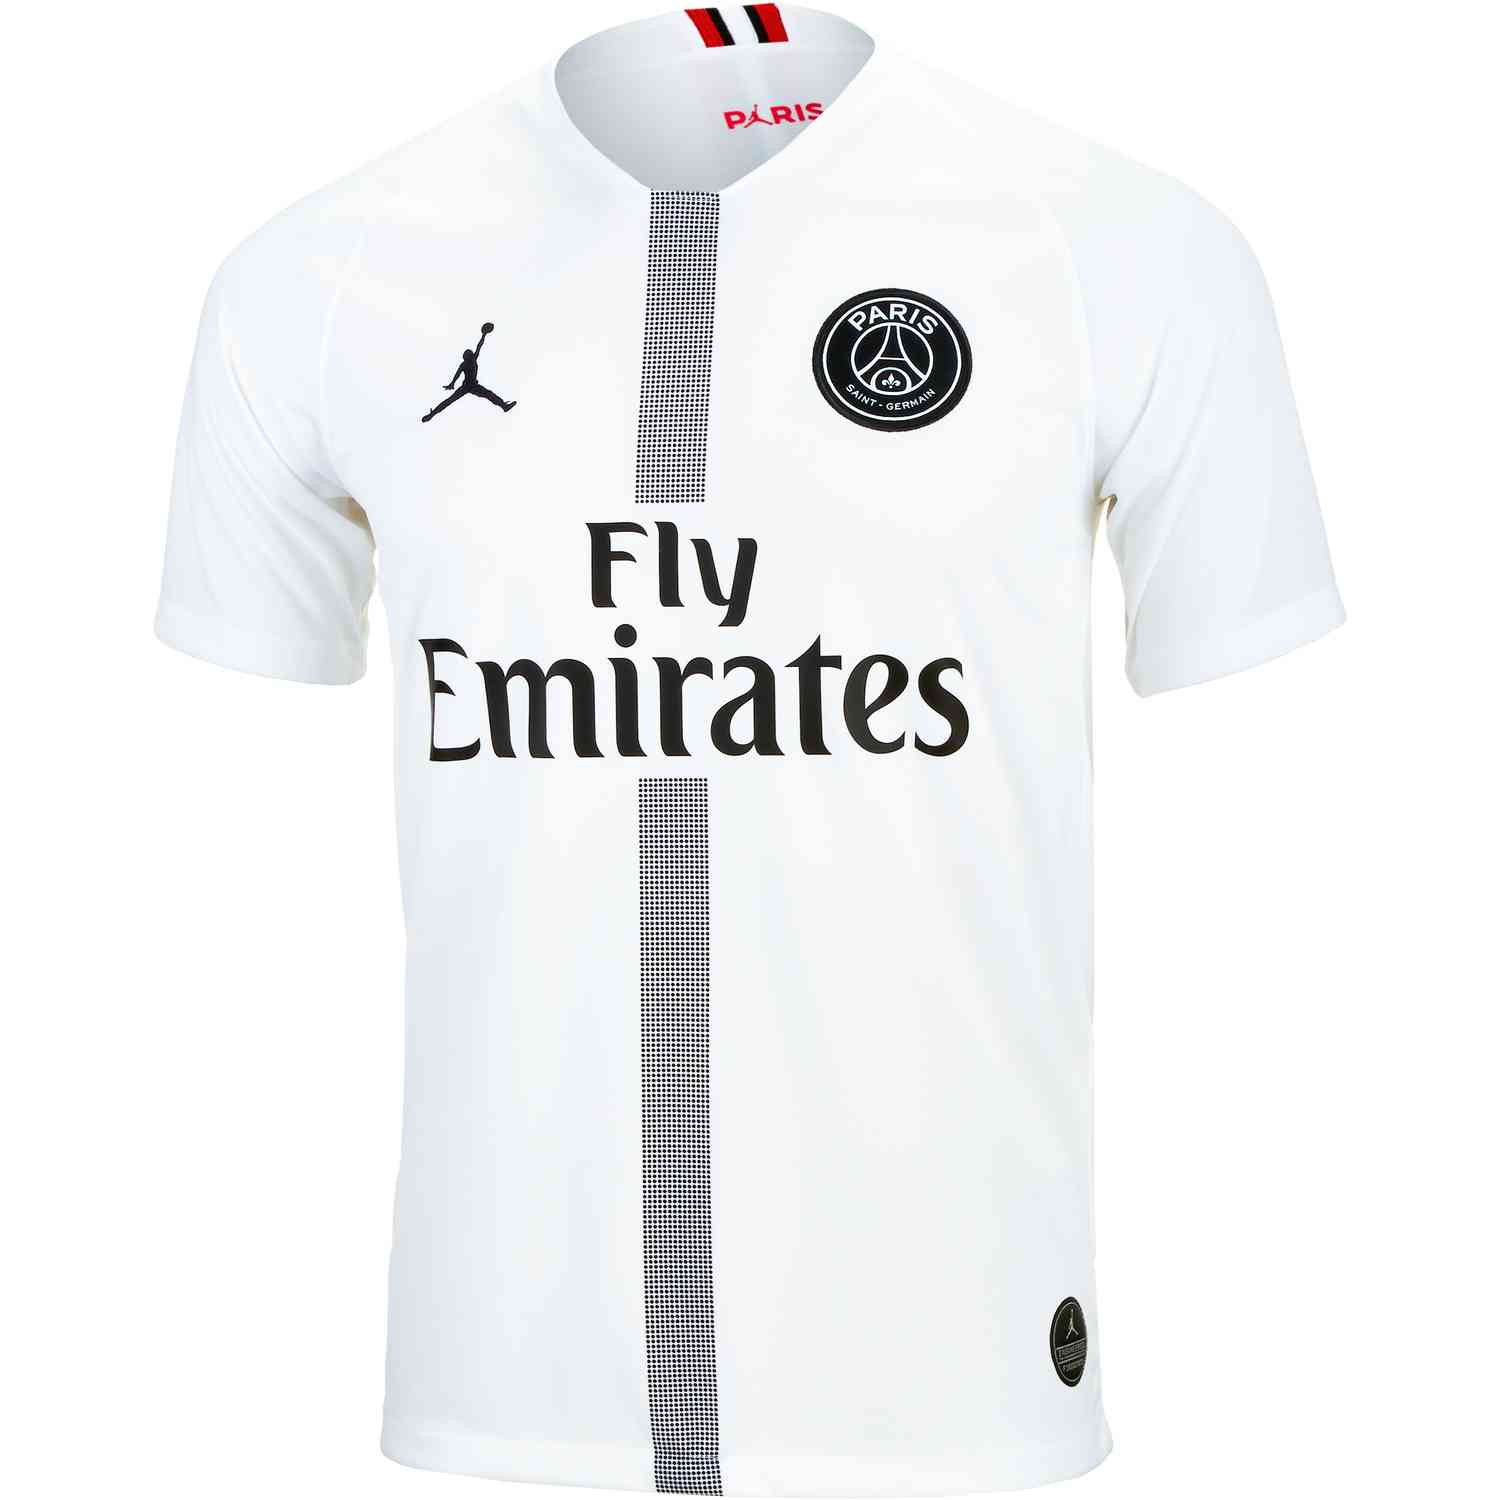 best sneakers 45a44 51f3c 2018/19 Jordan PSG 3rd Jersey - Youth - White/Black